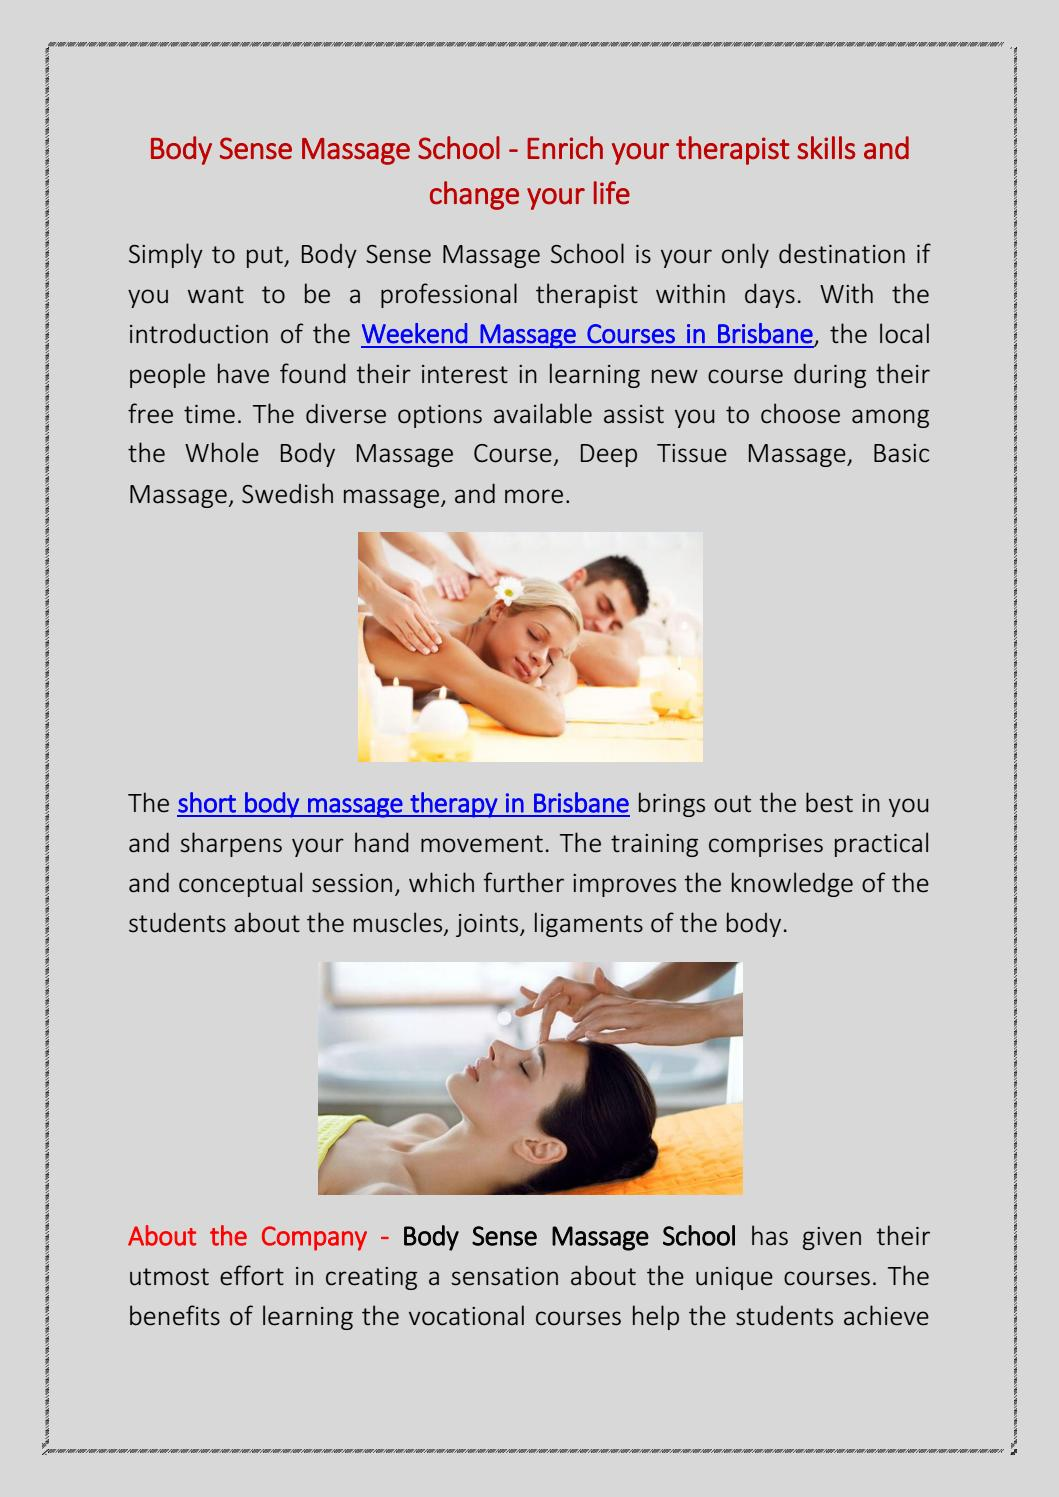 Forum on this topic: How to Choose a Massage Course, how-to-choose-a-massage-course/